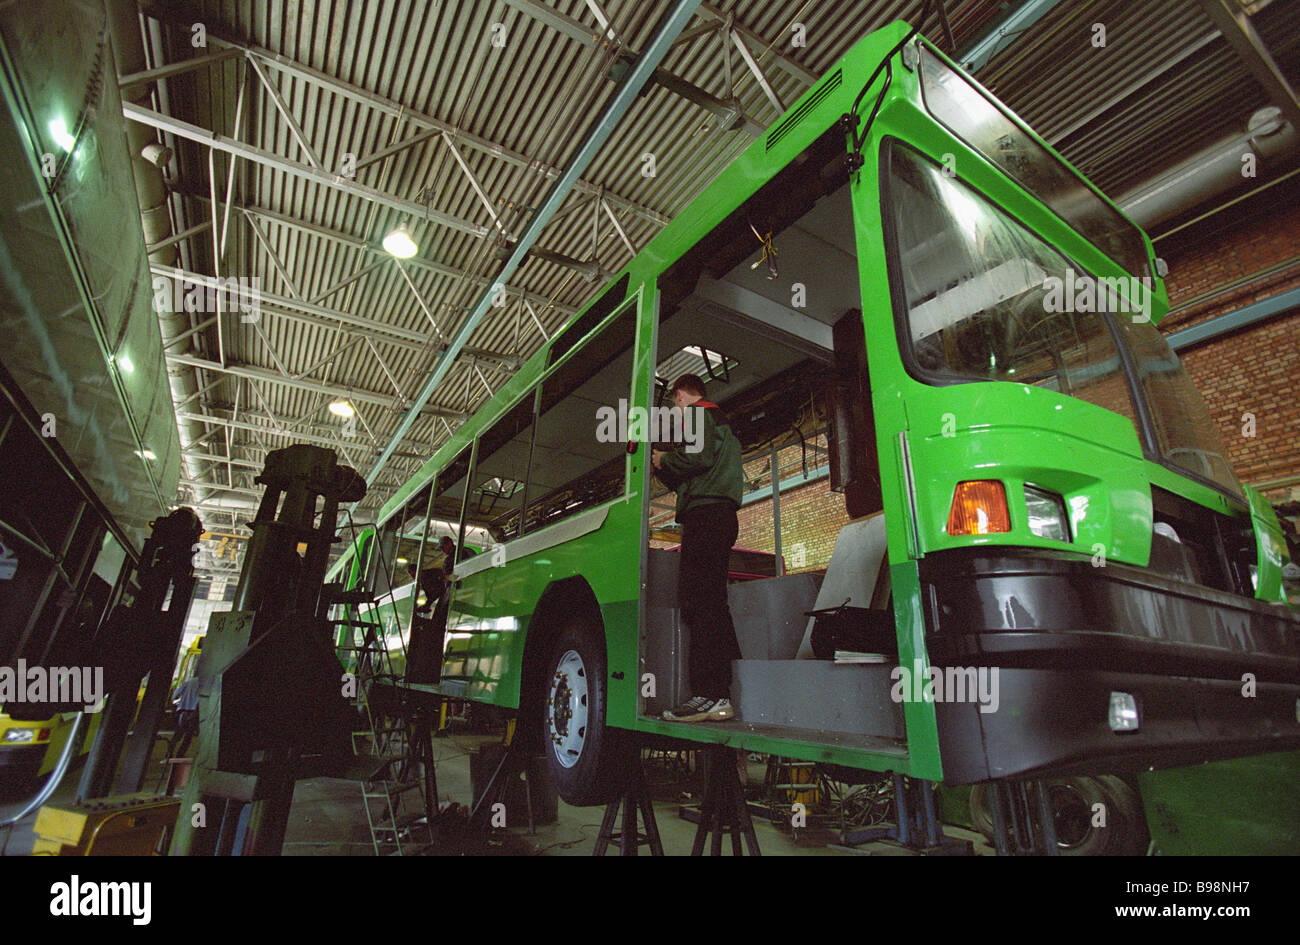 Bus assembly at the MAZ factory Minsk Belarus - Stock Image